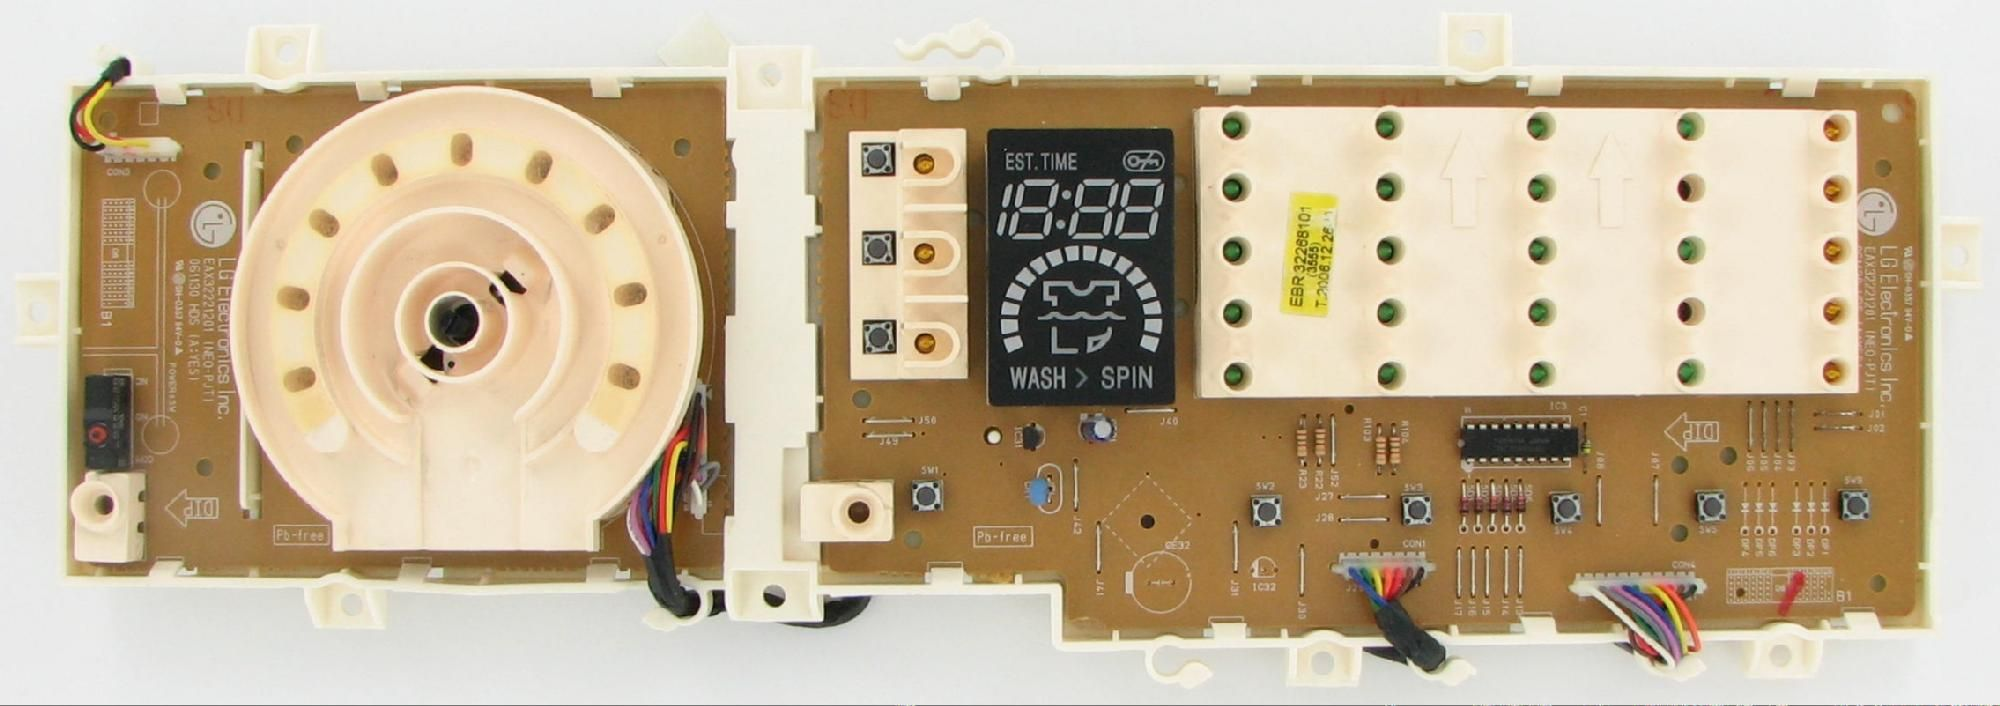 Lg ebr washer electronic control board control boards